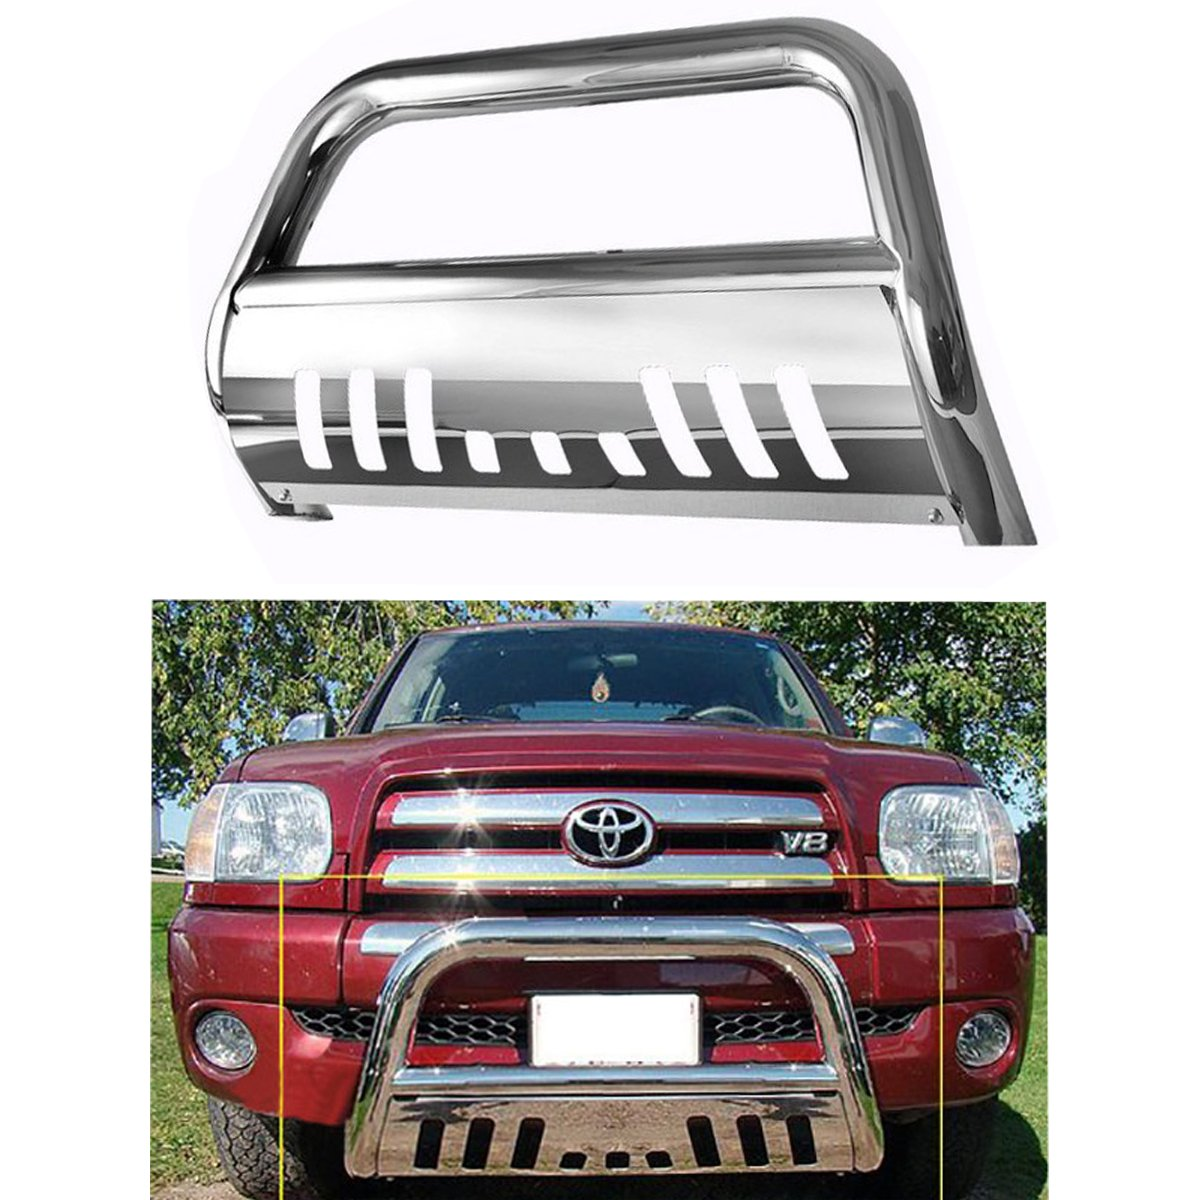 Bull Bar Skid Plate Front Push Bumper Grille Guard Stainless Steel Chrome for 2005-2015 Toyota Tacoma